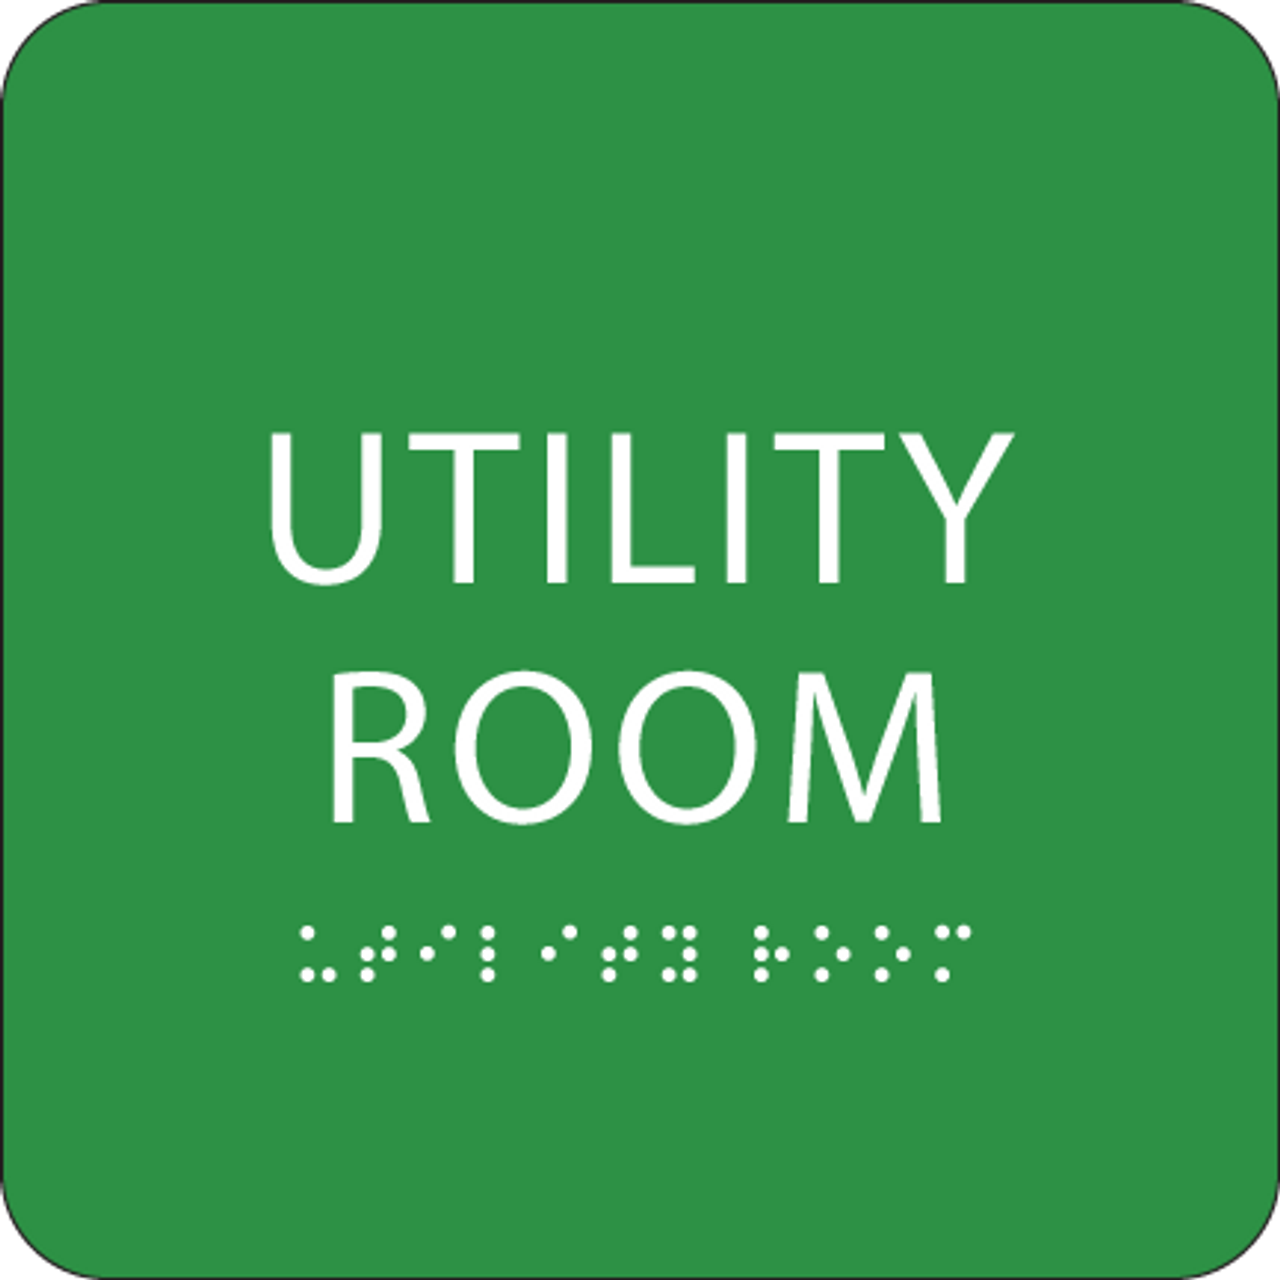 Green Utility Room Tactile Sign